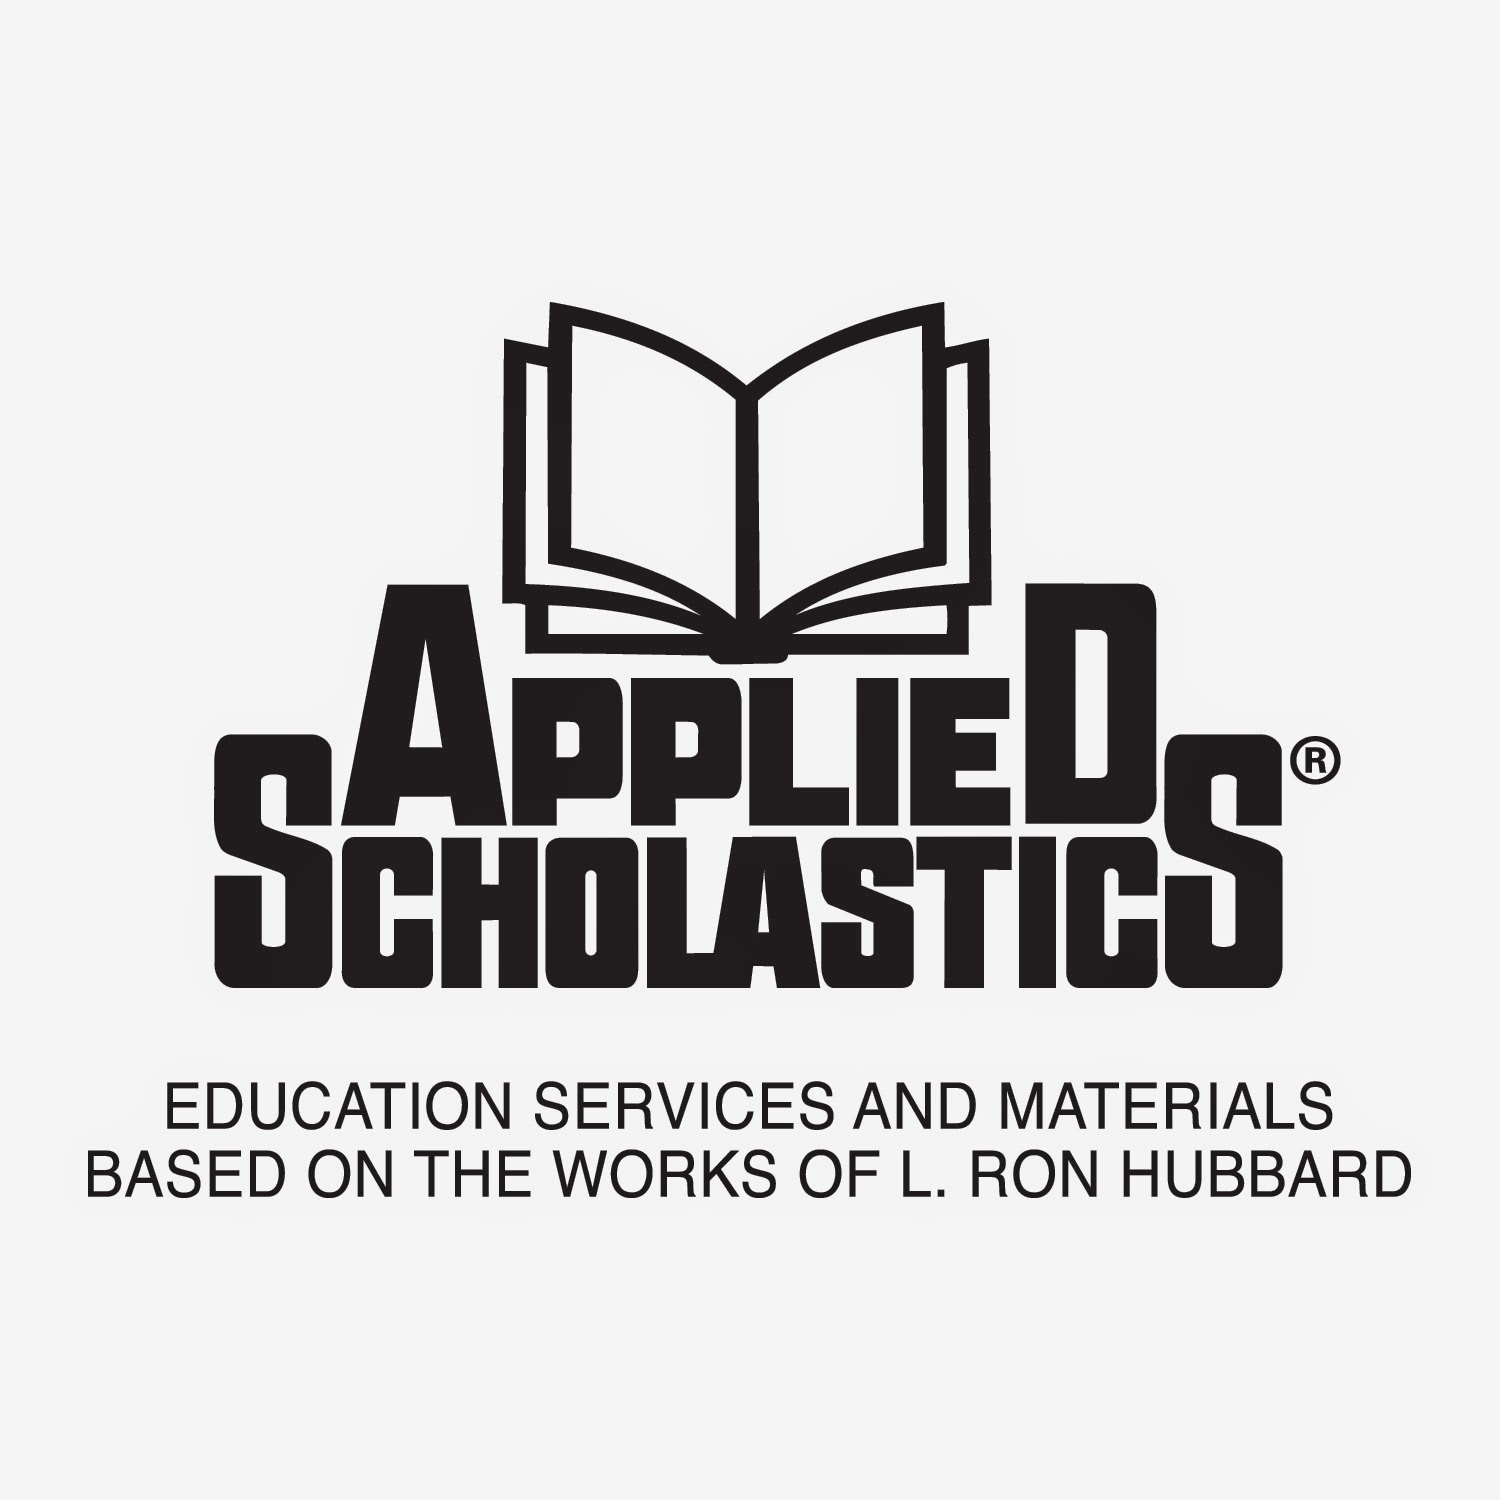 Applied Scholastics